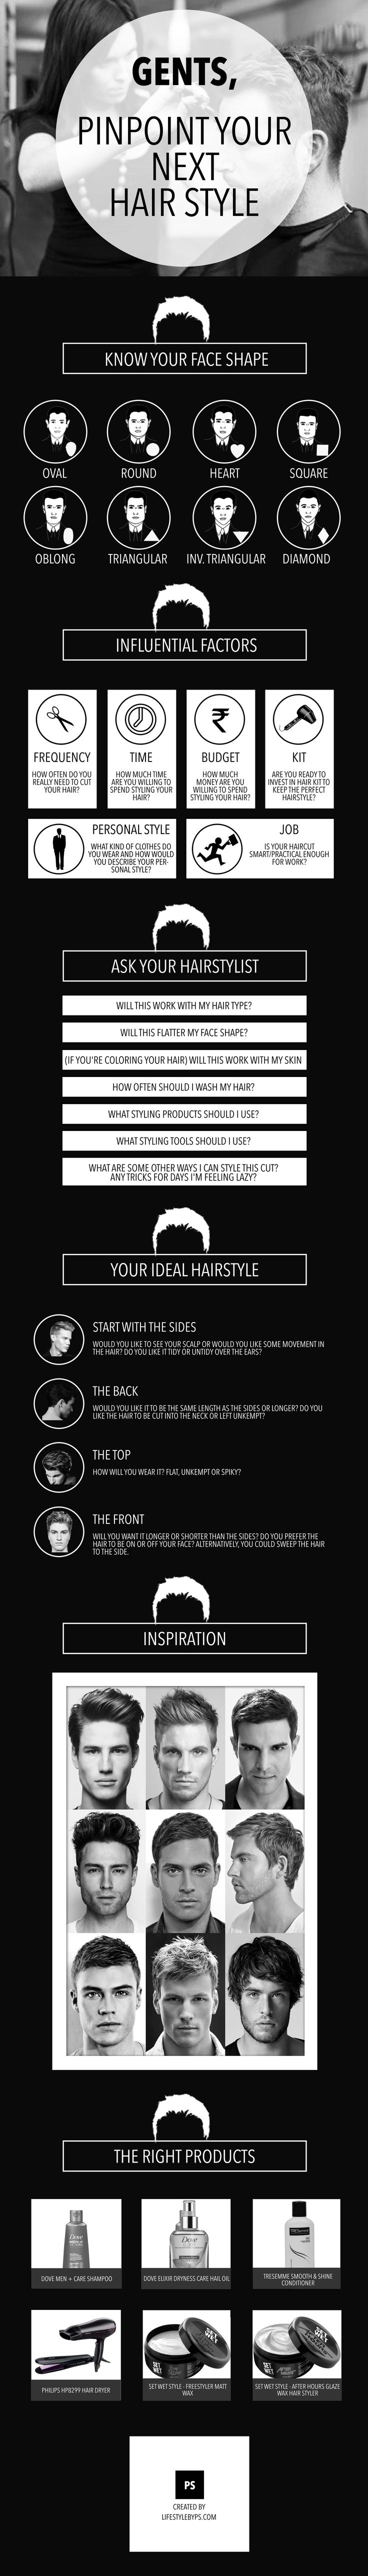 Picking a new men's hairstyle and getting it perfect can be a intricate task as you need to consider multiple factors such as your face shape,  personal style, hair type, budget, lifestyle and job. We